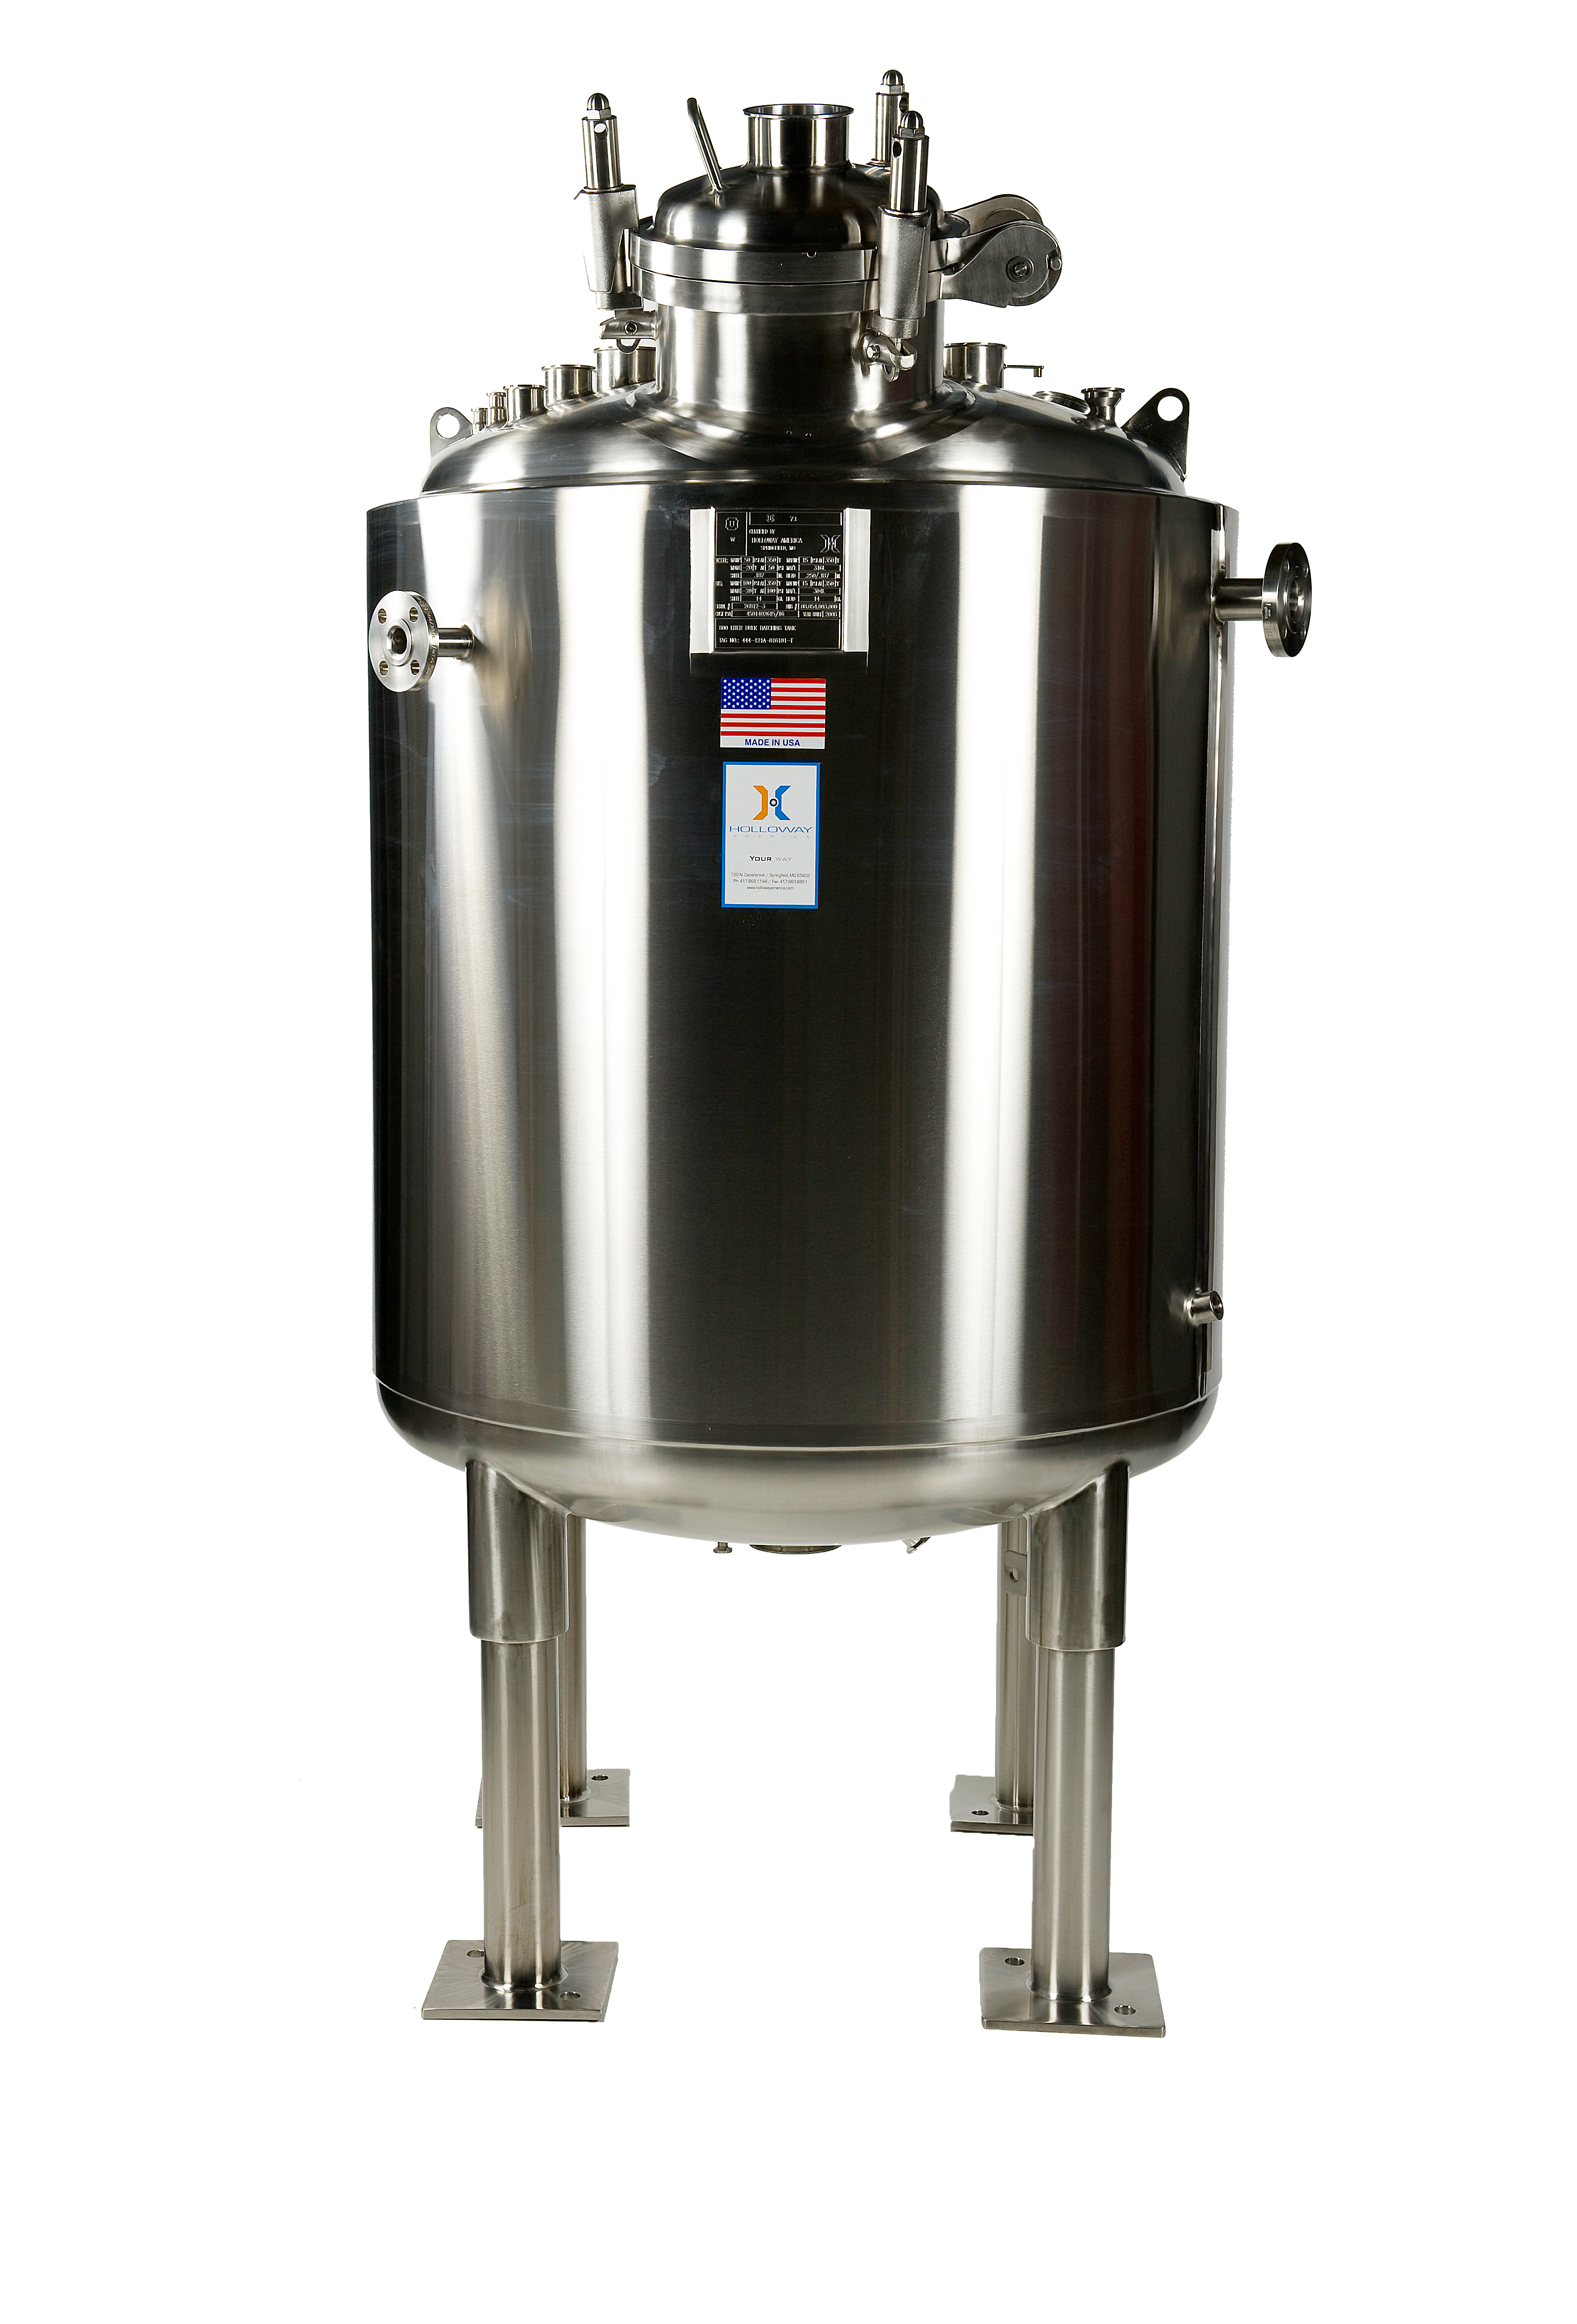 To store sterile water for injections, this WFI water tank is made to last.